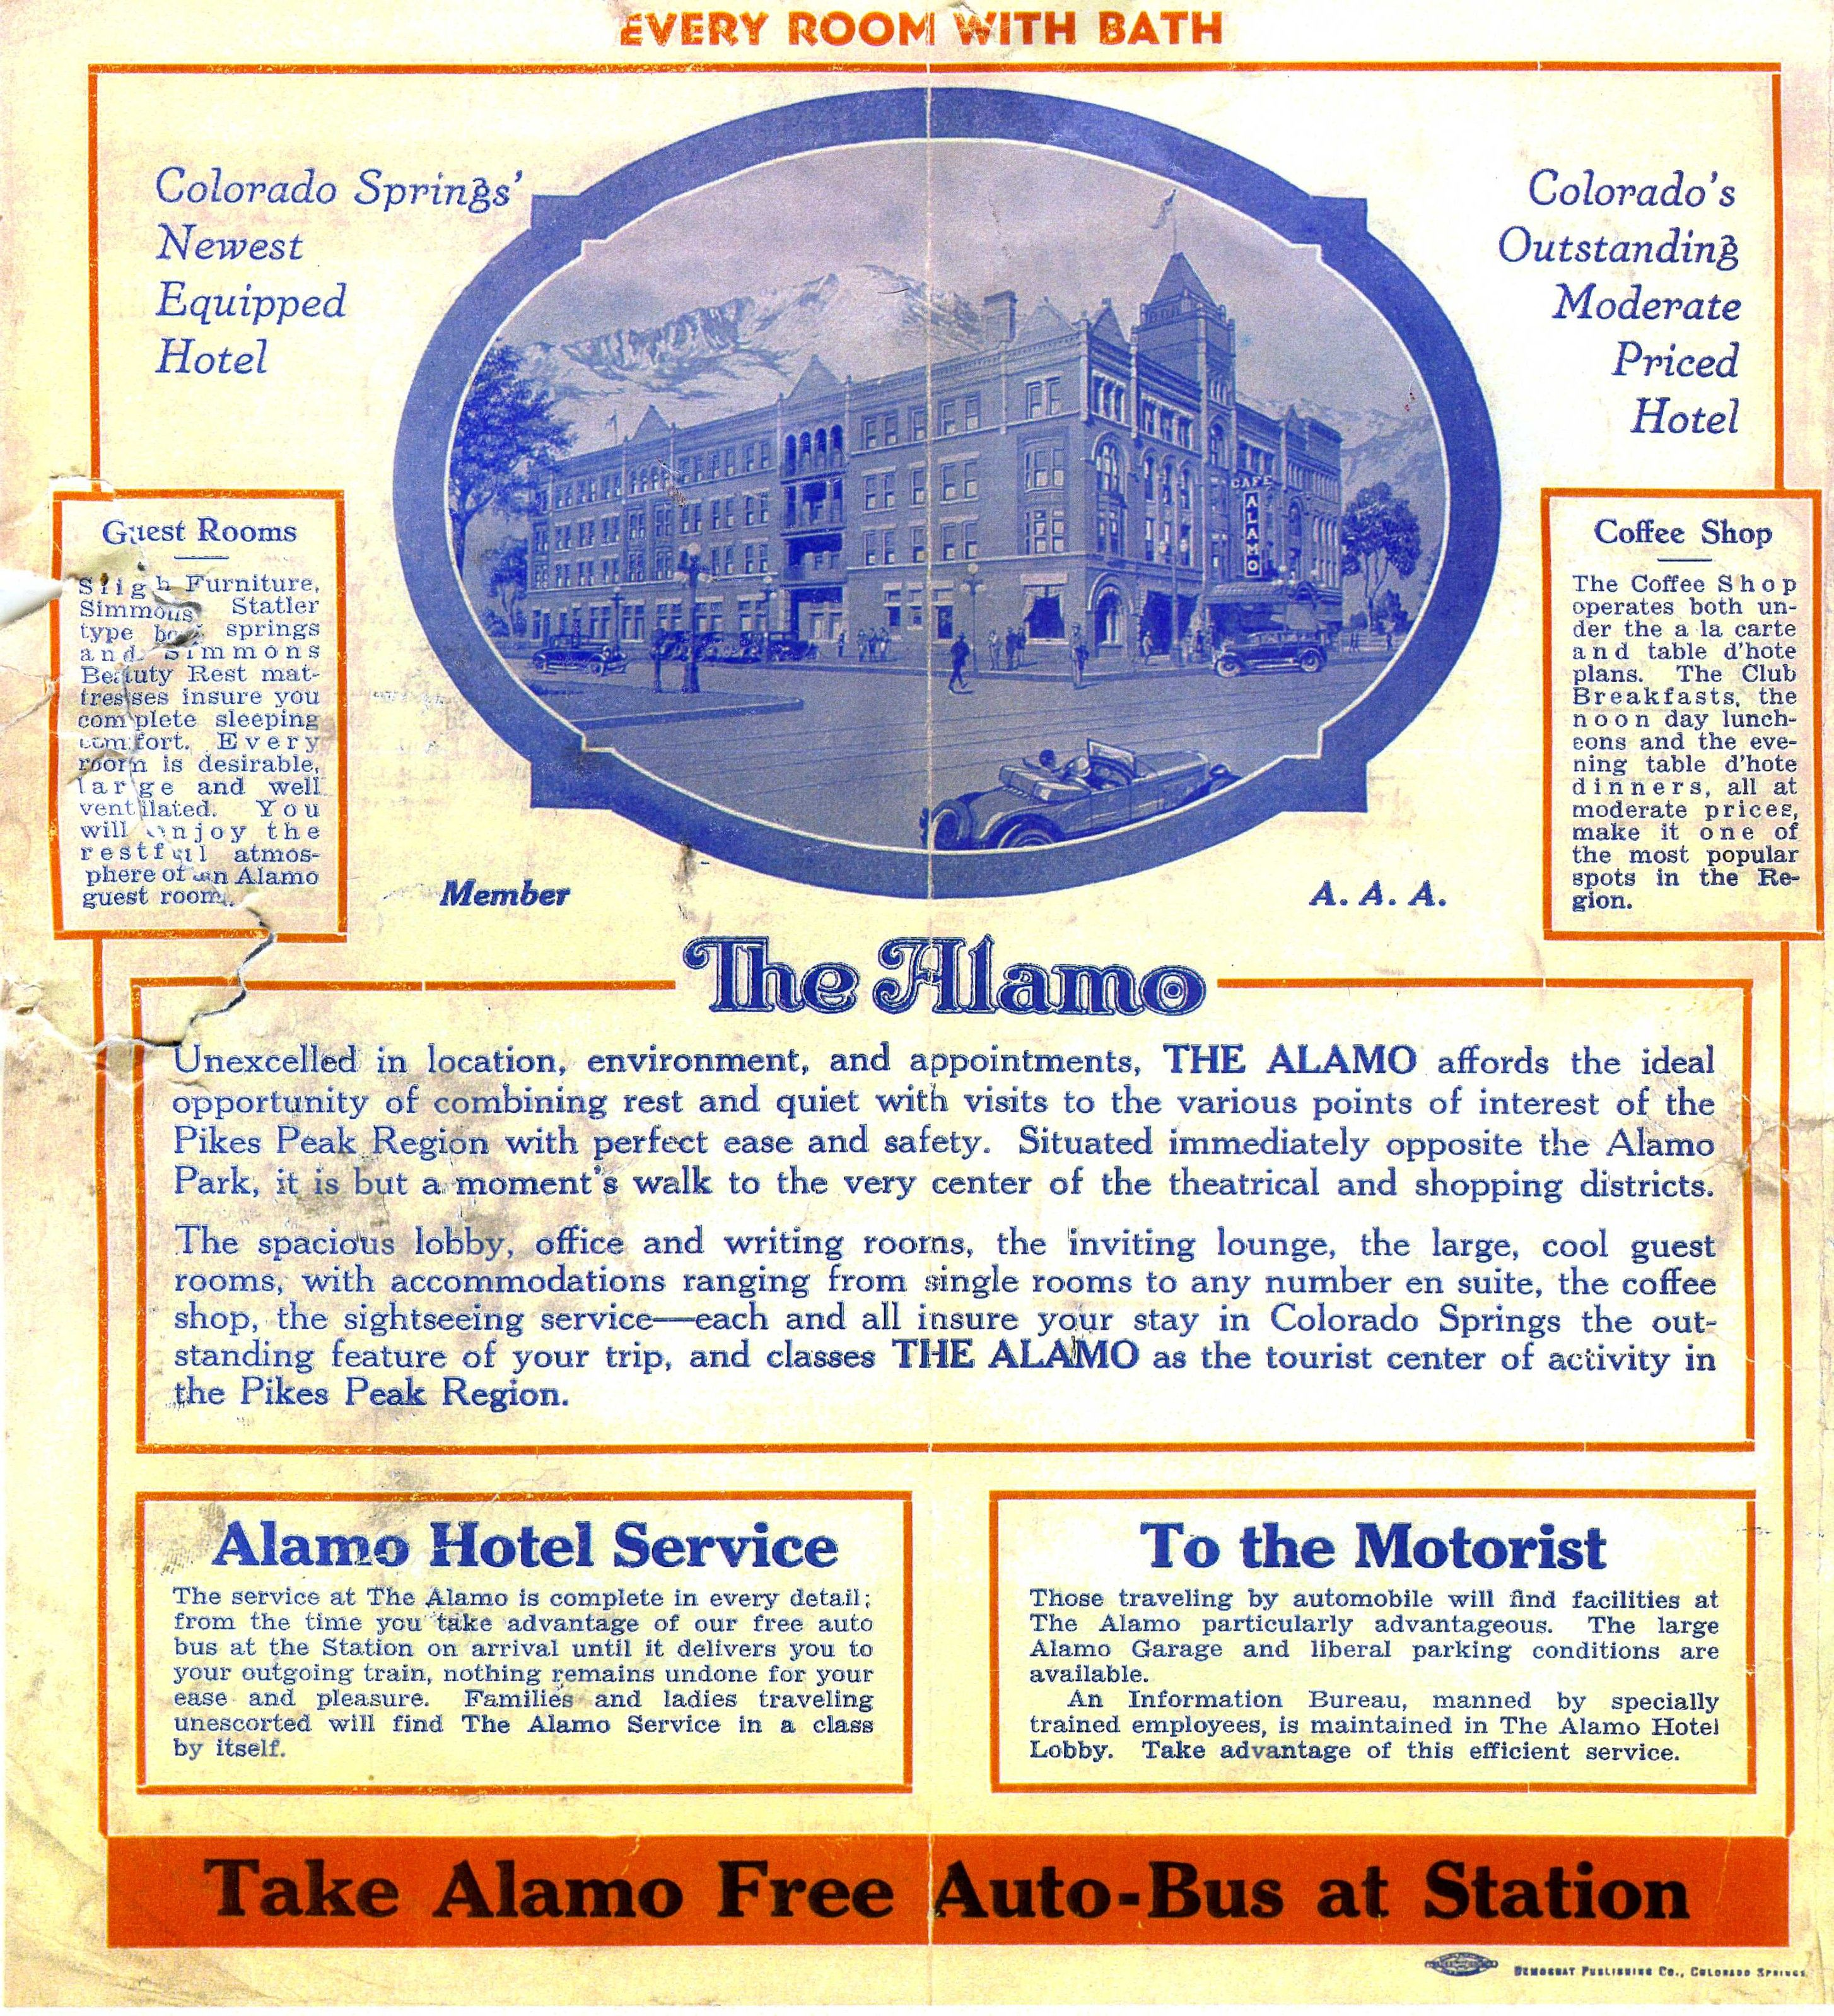 Old Picture Of The Alamo Hotel In Colorado Springs There S No